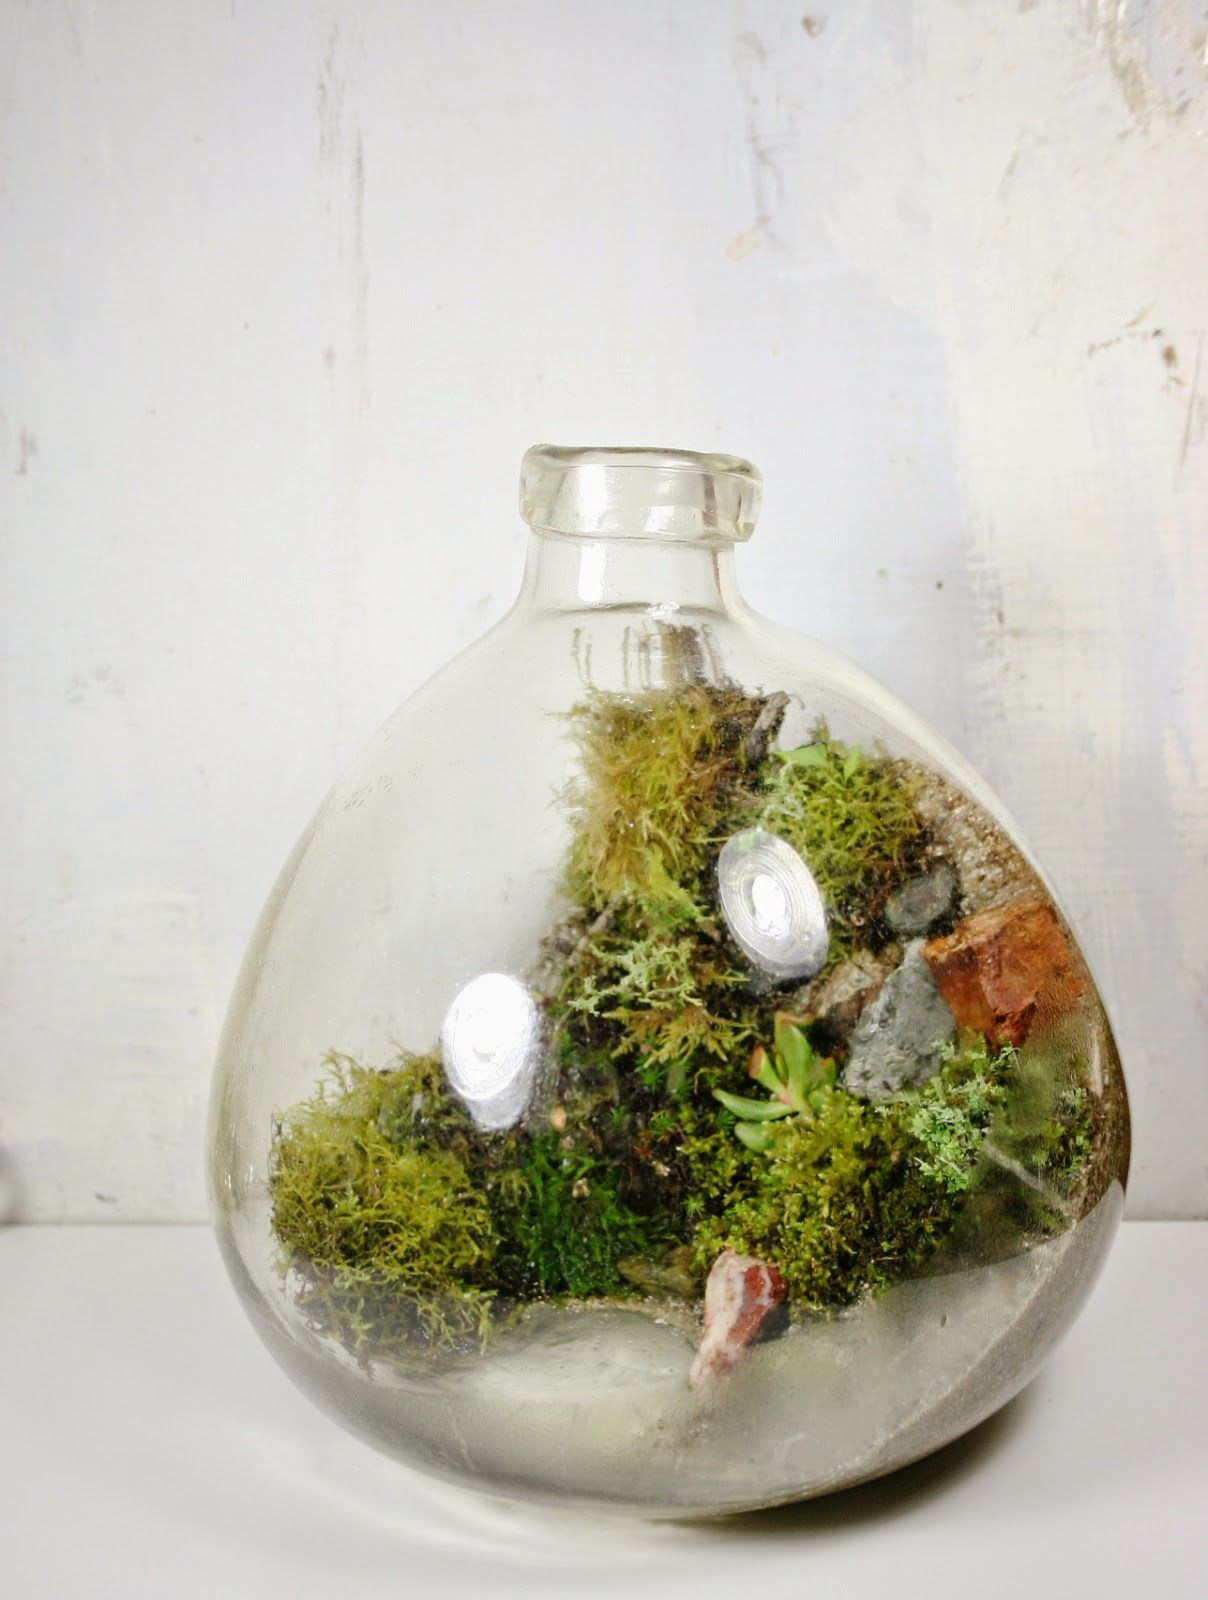 We Create Objects Of Wilderness. One Of A Kind Artisan Terrariums Of Local  Plants And Moss Inside Repurposed Found And Heirloom Glass Vessels. Every  Living ...